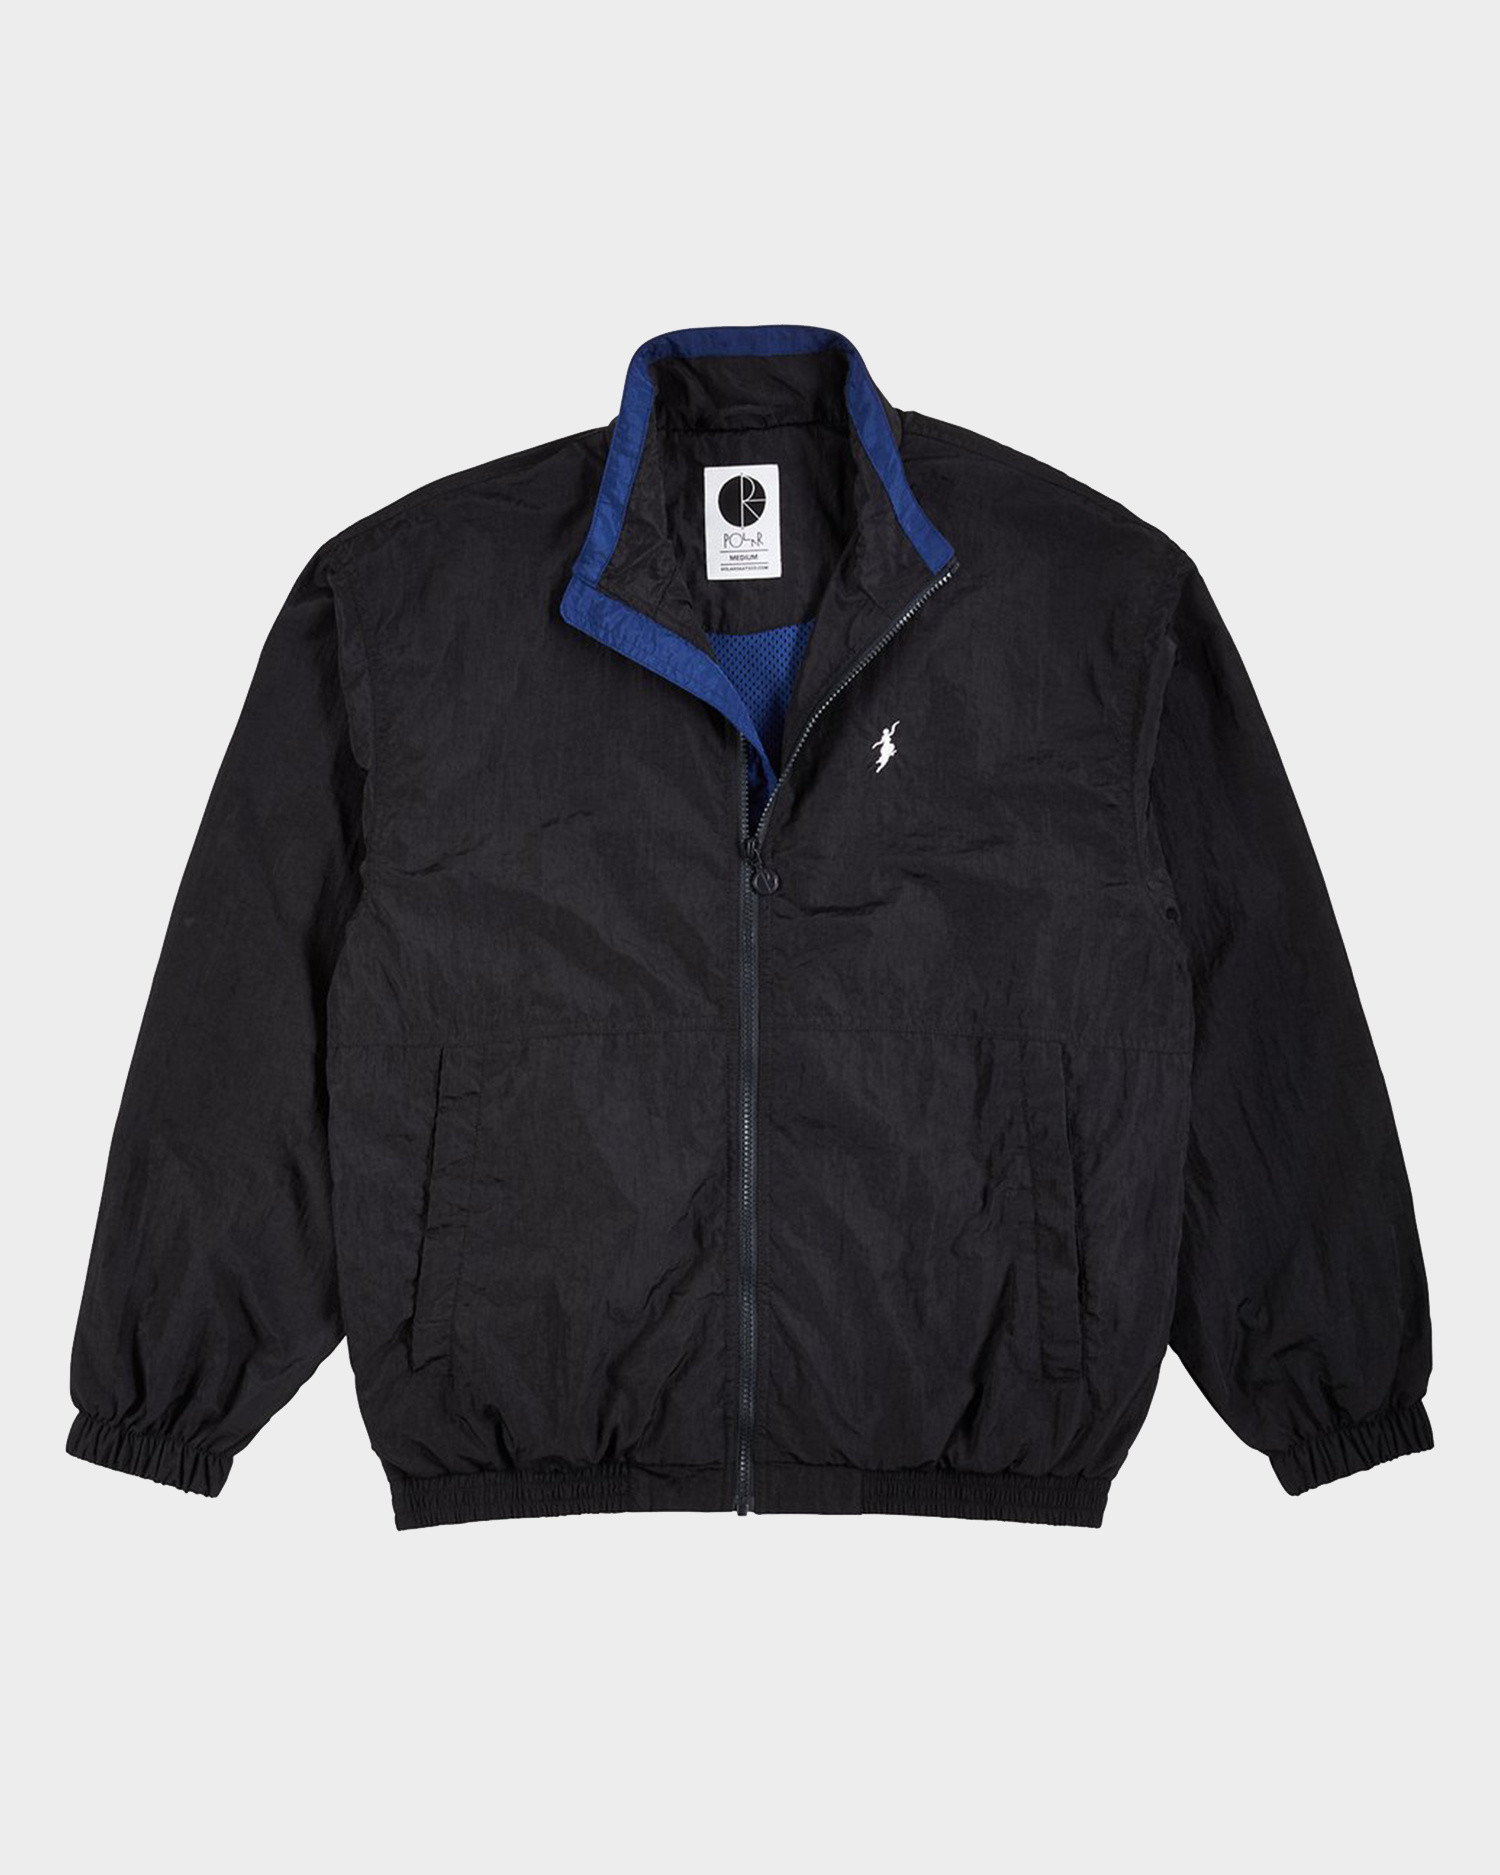 Polar Track Jacket Black/Blue